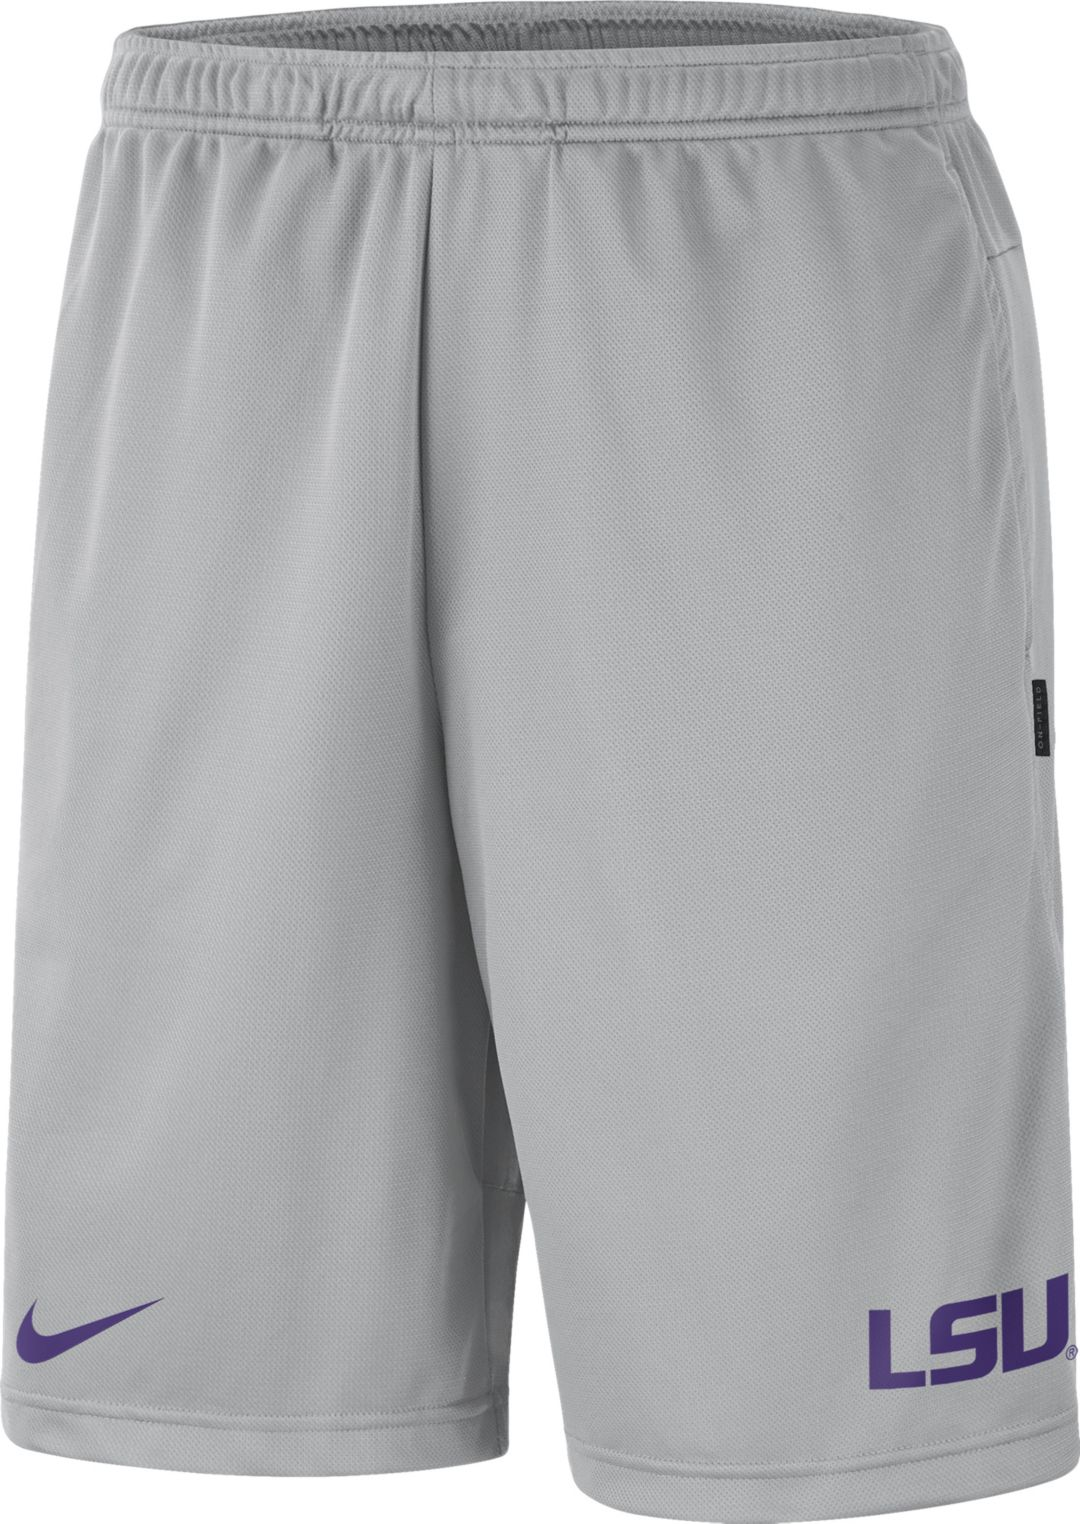 e32e2bf451bb0d Nike Men's LSU Tigers Grey Dri-FIT Coach Shorts | DICK'S Sporting Goods